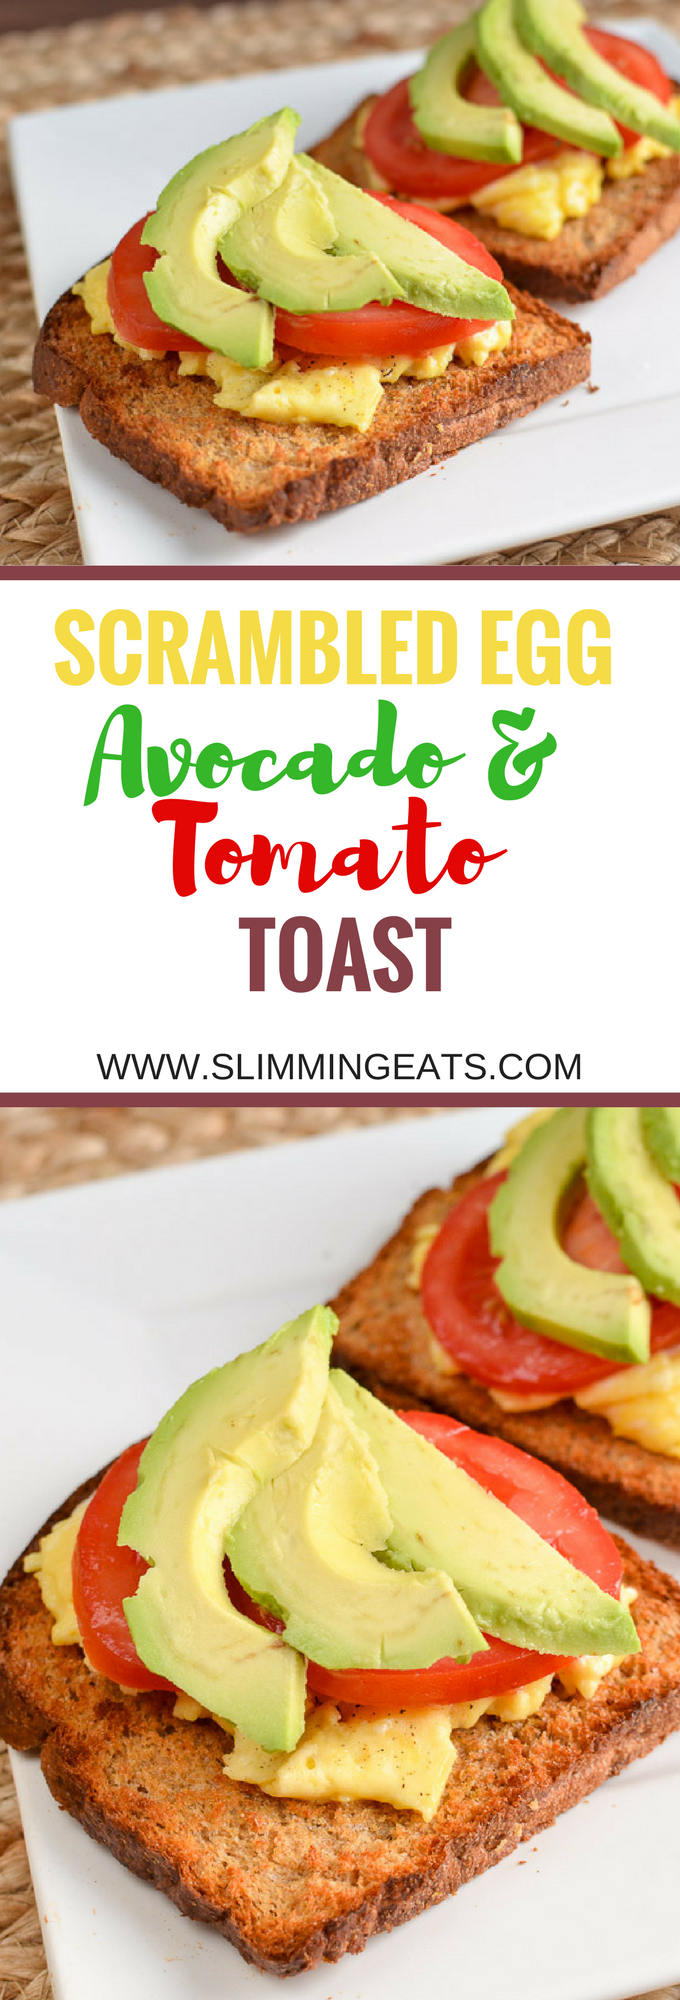 Slimming Eats Low Syn Scrambled Egg Toast with Avocado and Tomatoes - dairy free, vegetarian, Slimming World and Weight Watchers friendly